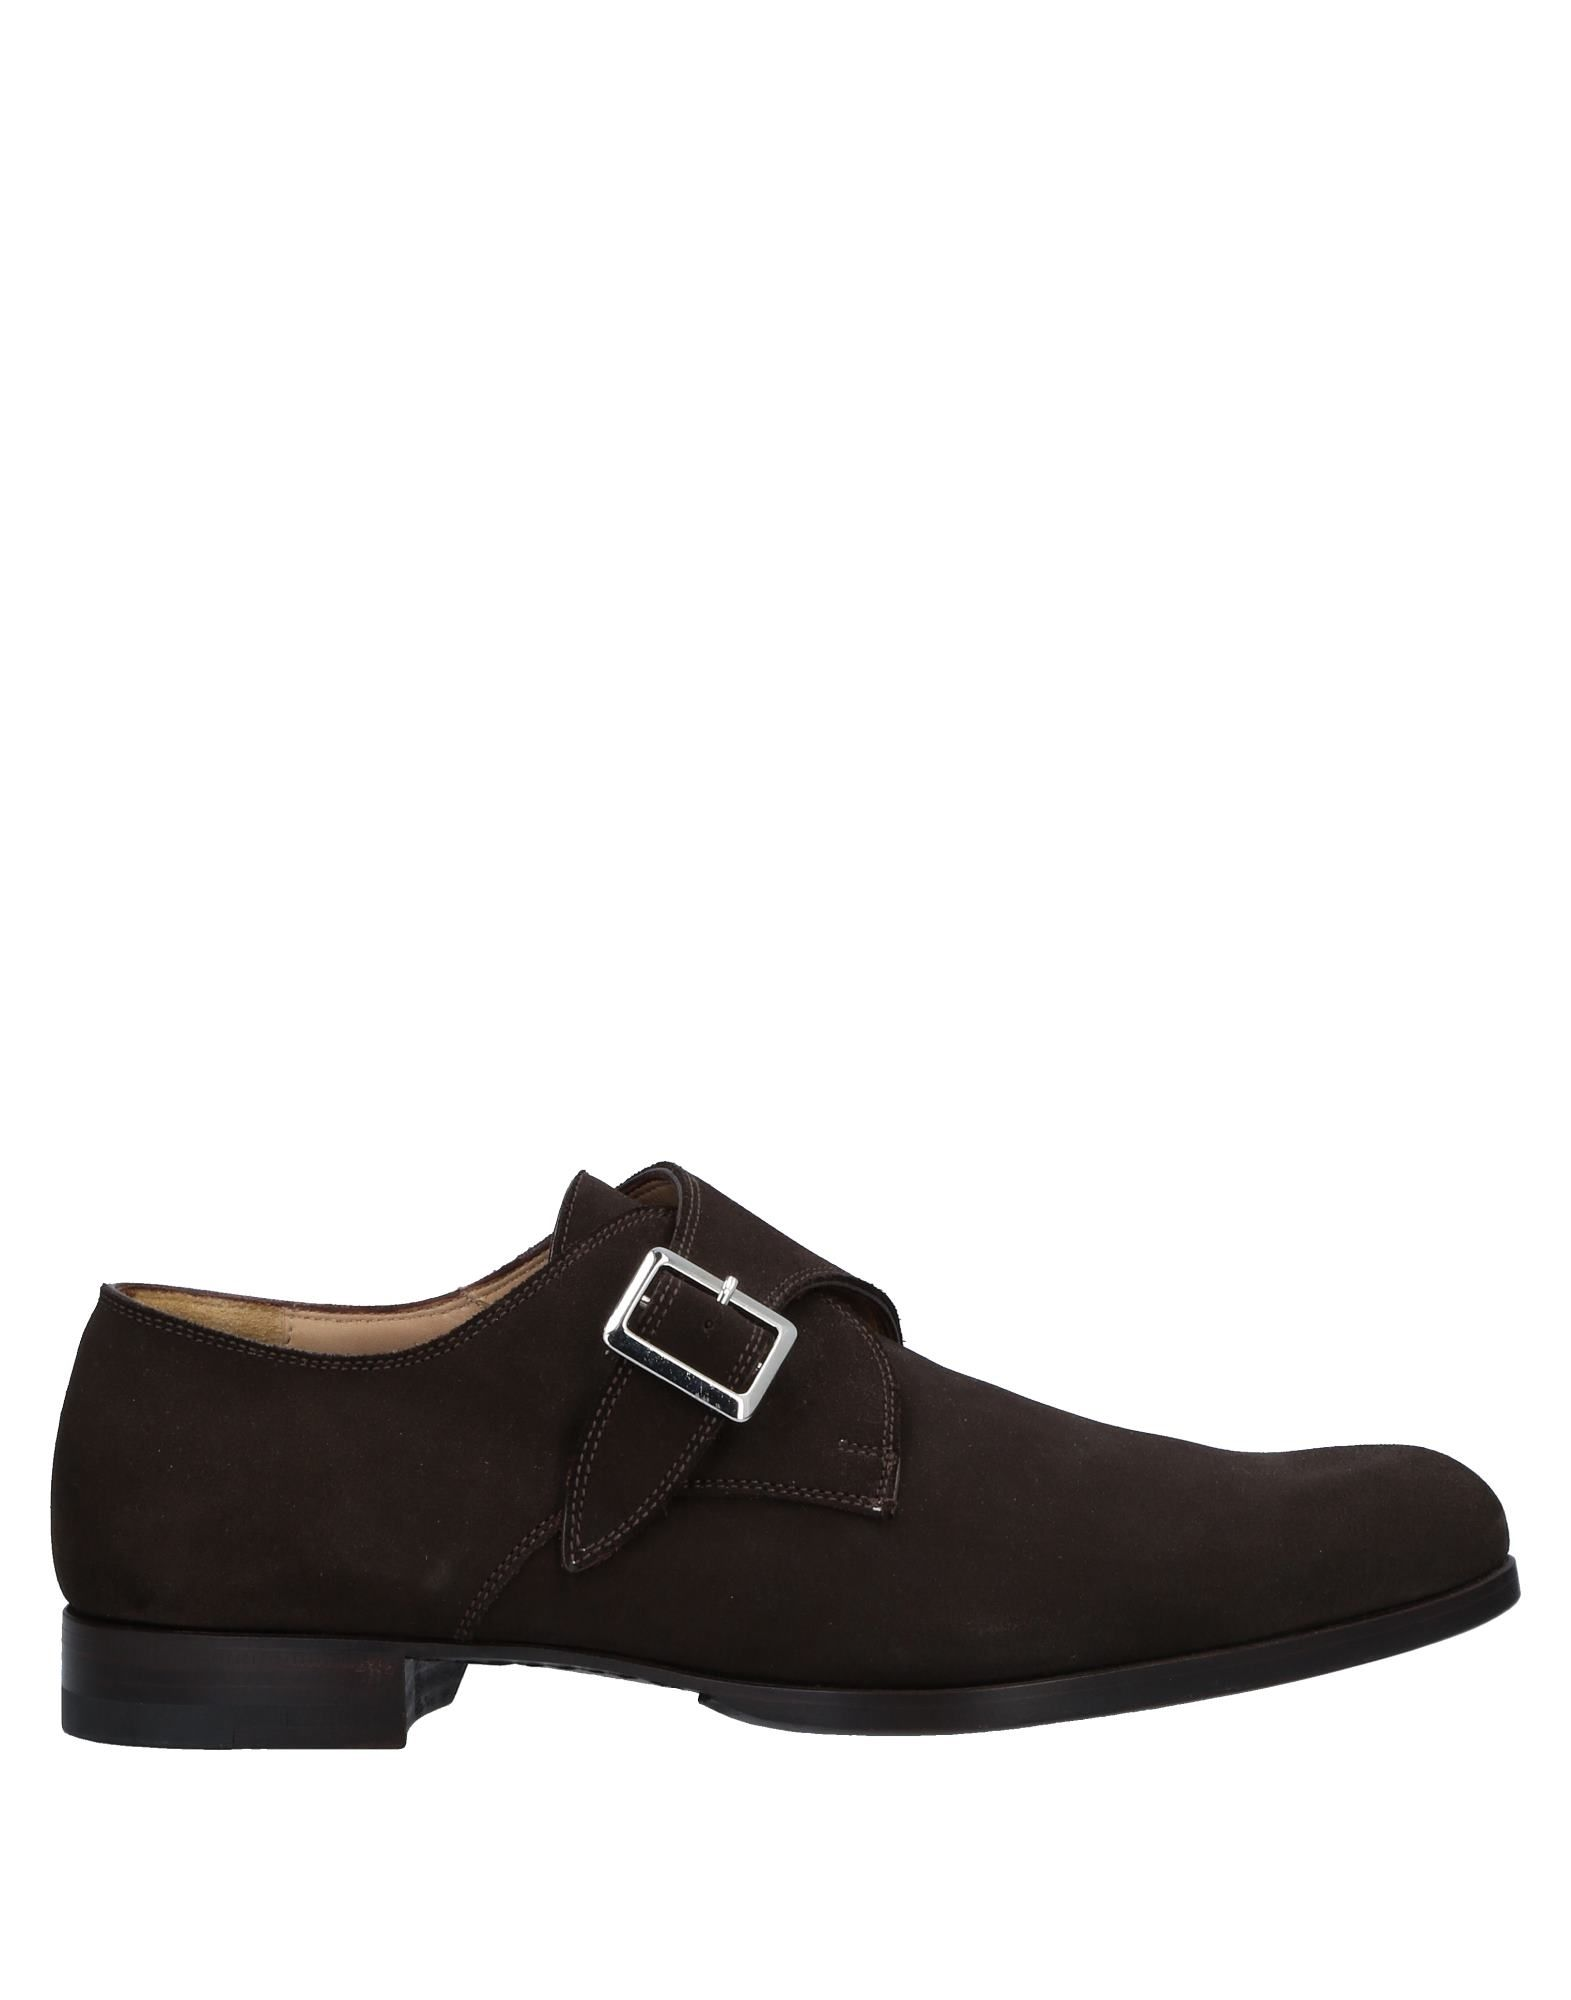 Arfango Loafers - Men Arfango Australia Loafers online on  Australia Arfango - 11525117NR 456ed3